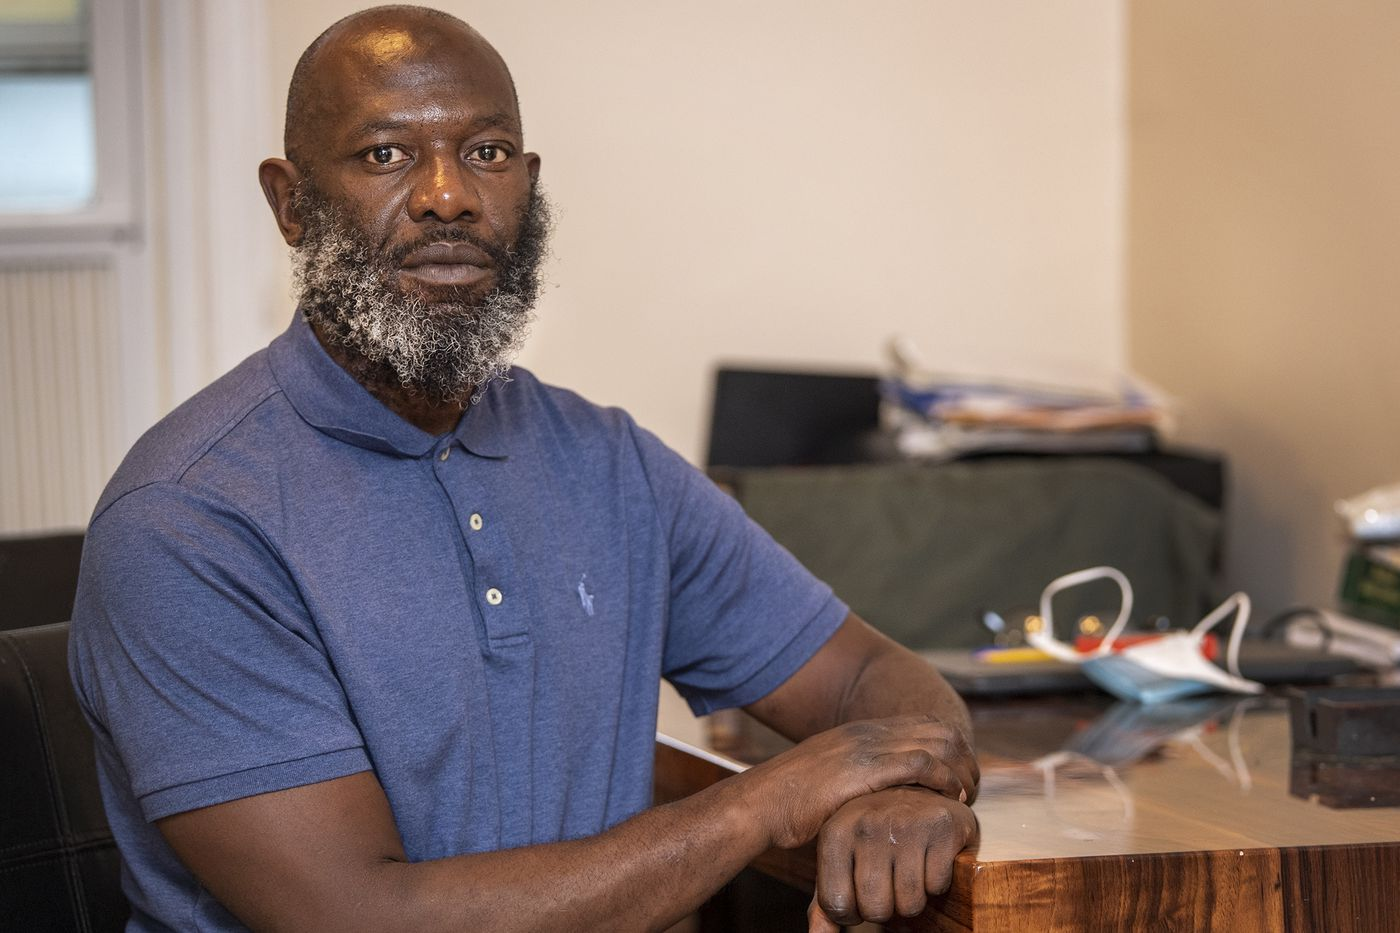 At 46, Travis Coffey enrolled in Orleans Technical College to become an electrician.